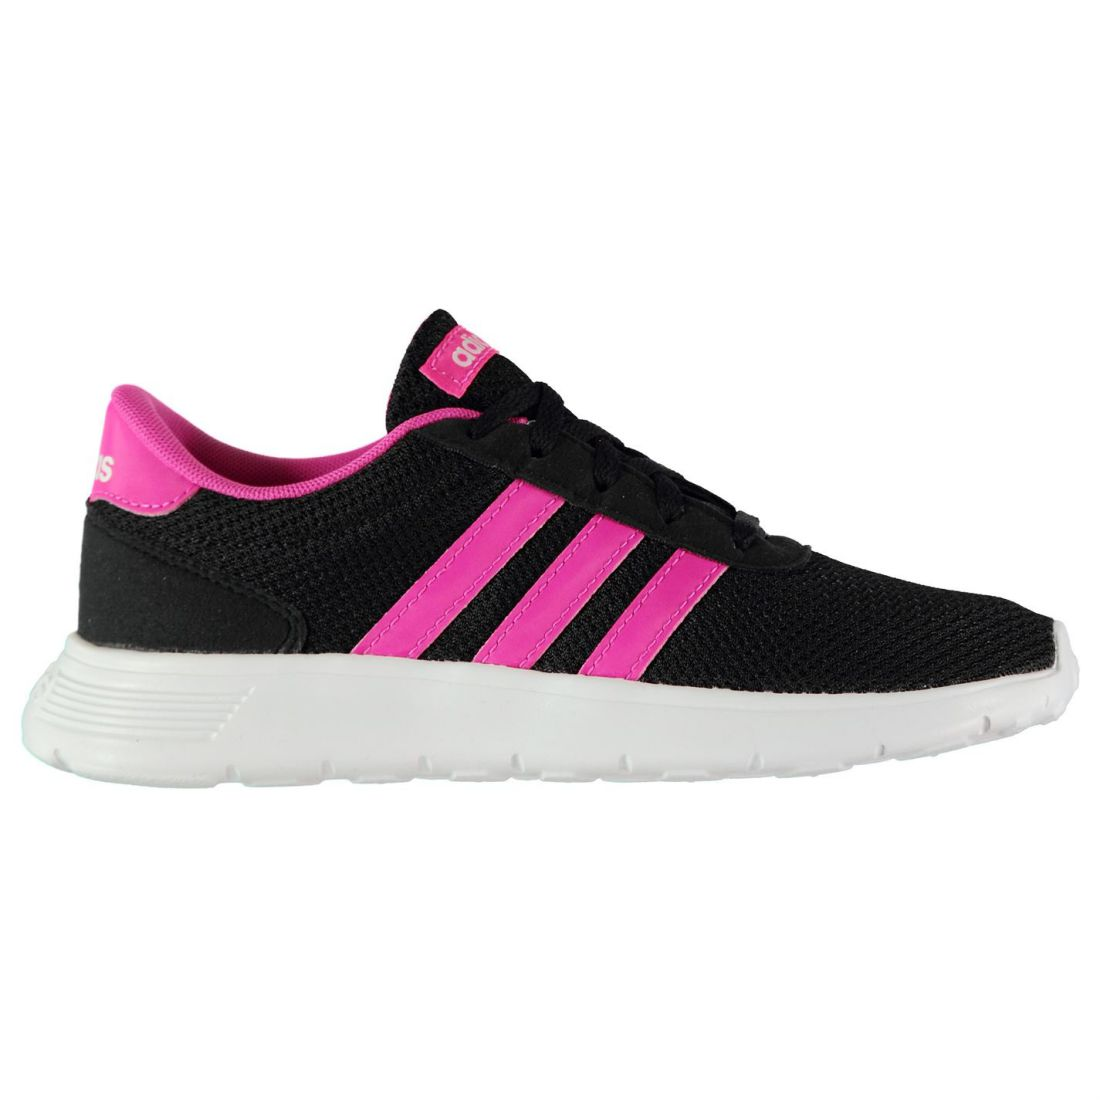 06278c263072 adidas Kids Girls Lite Racer Child Trainers Runners Lace Up Casual ...